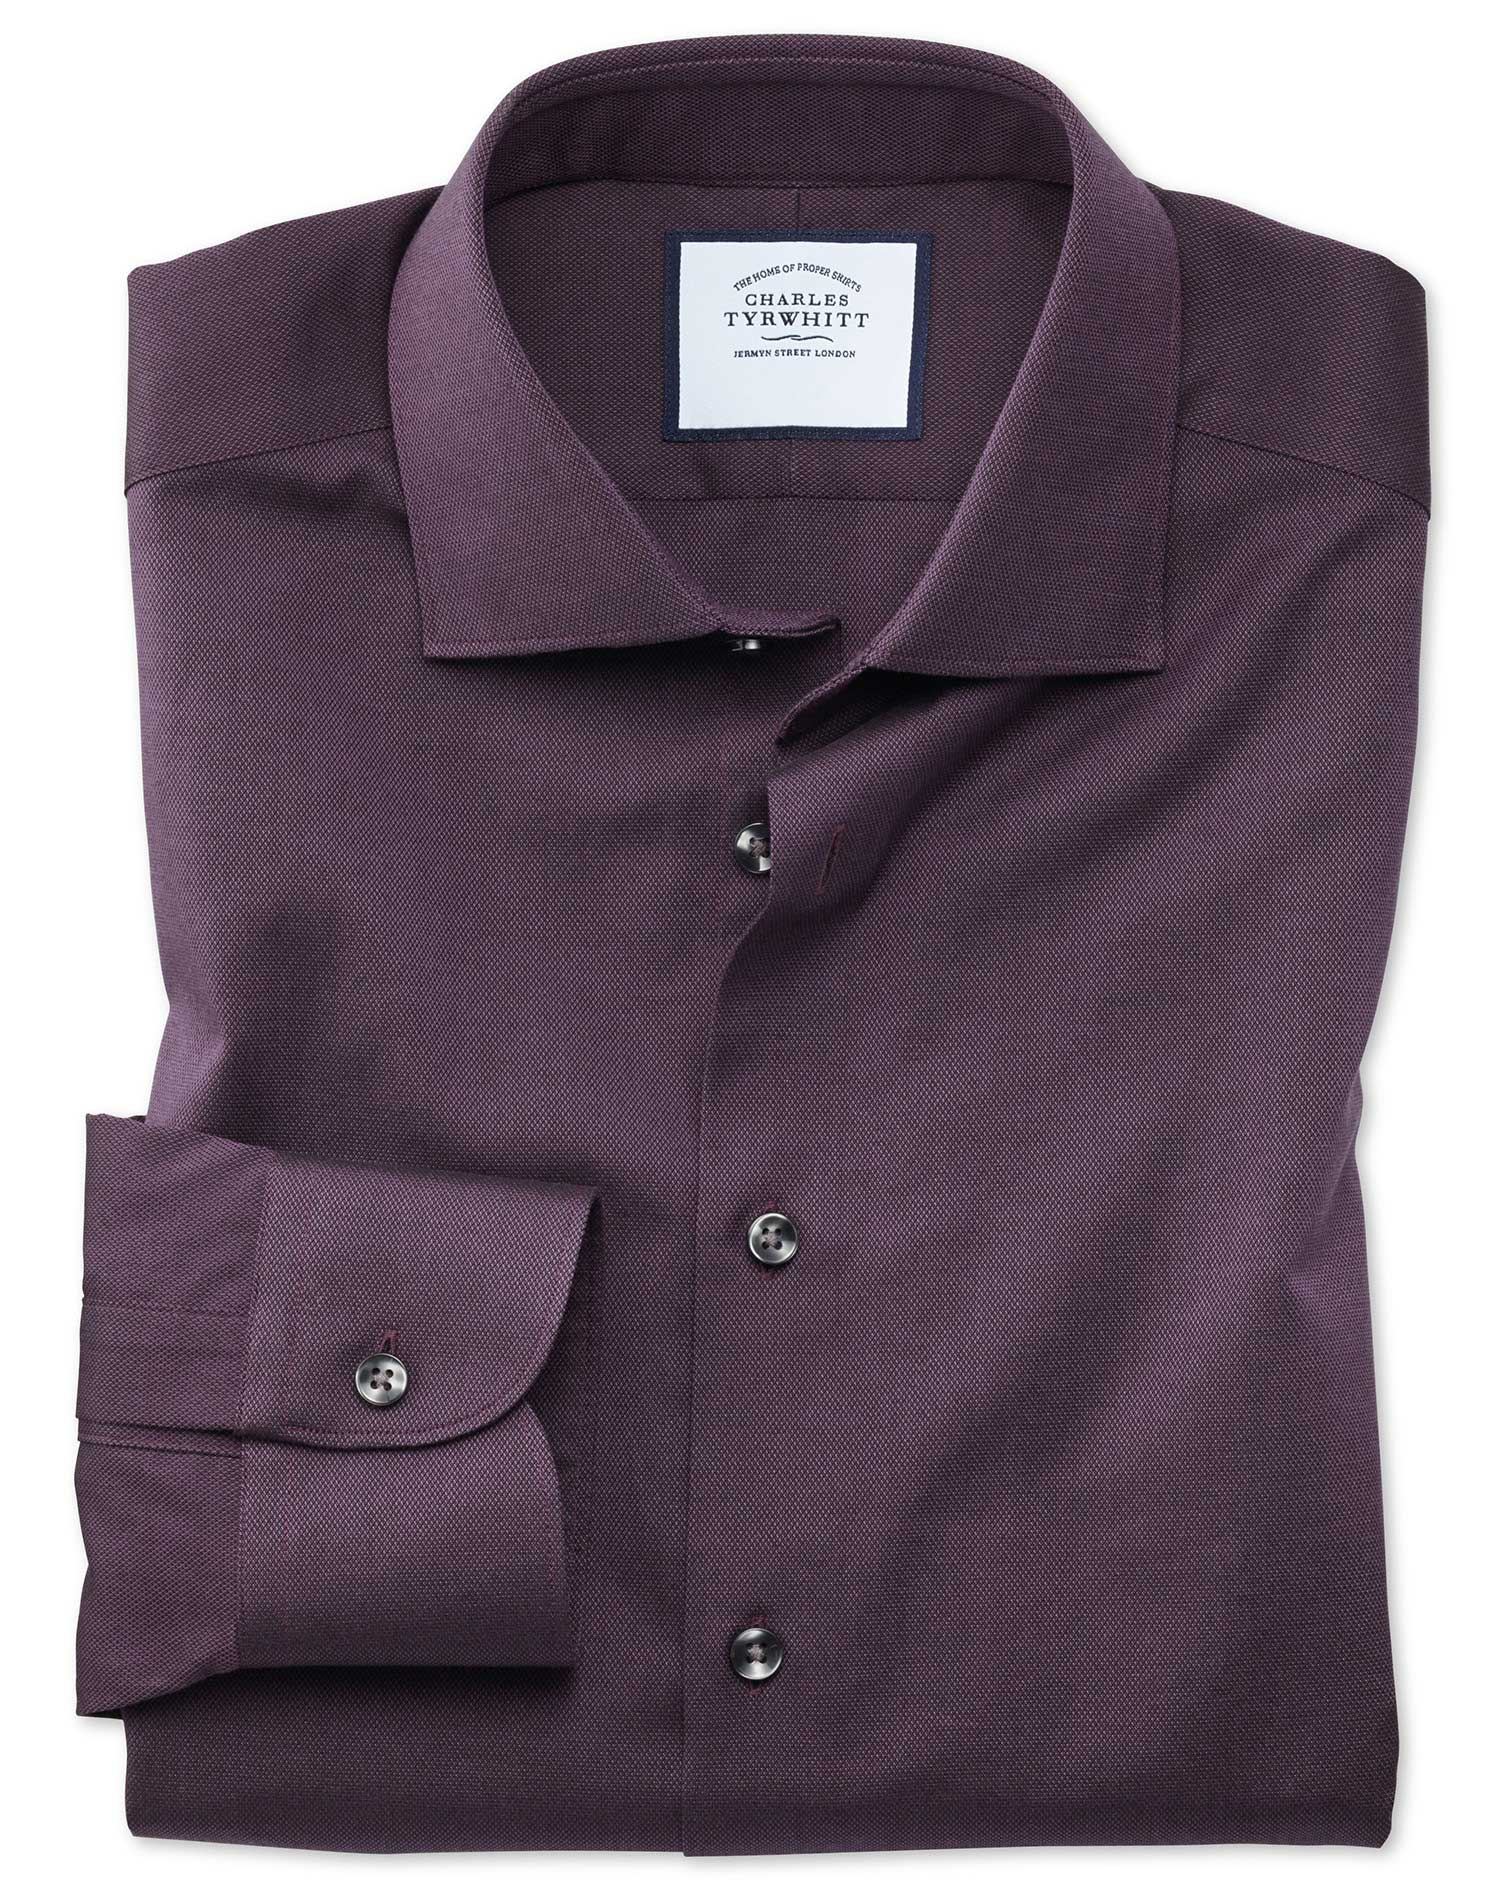 Classic Fit Business Casual Berry Royal Oxford Cotton Formal Shirt Single Cuff Size 15.5/33 by Charl